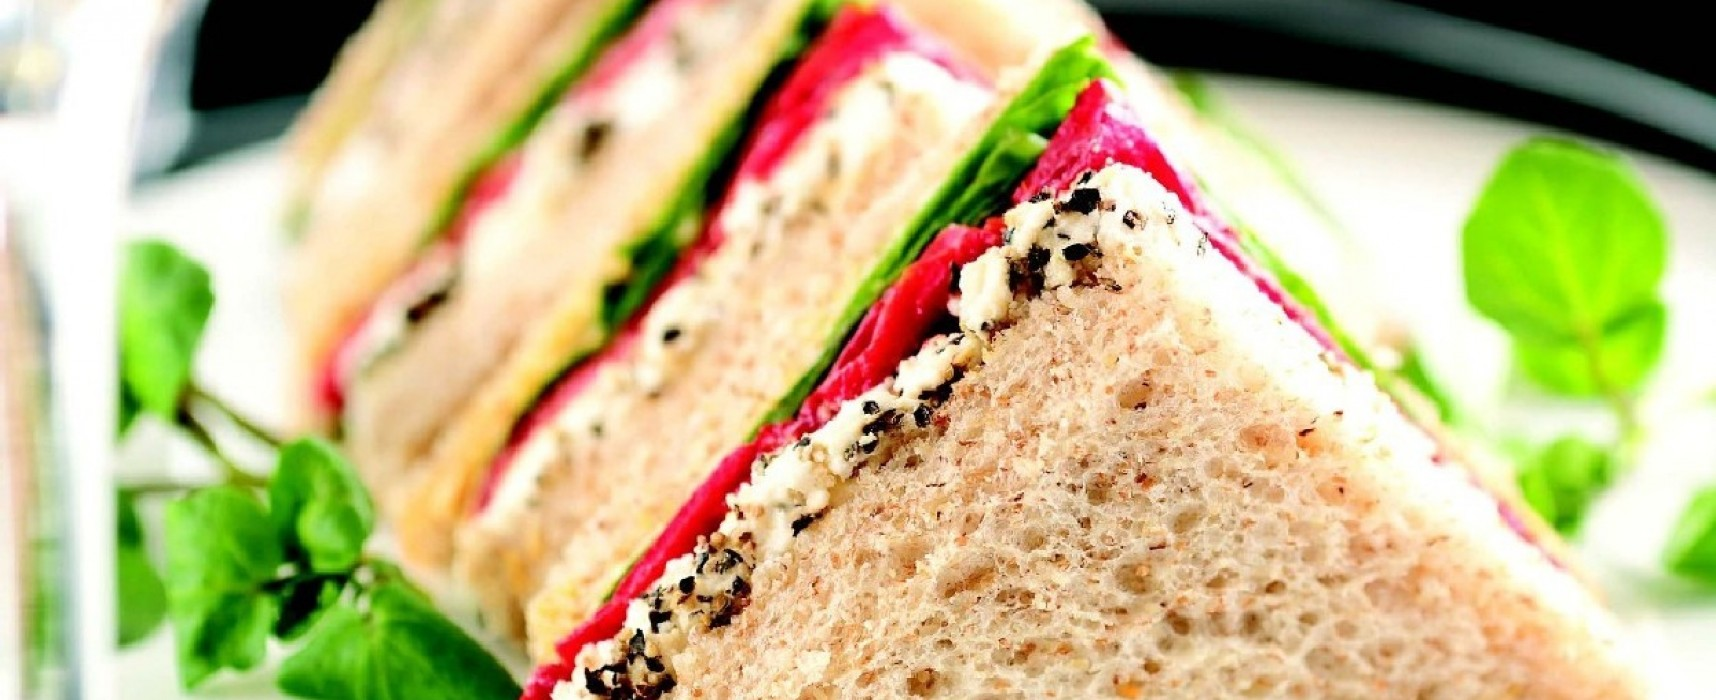 Easy Sandwich Recipes